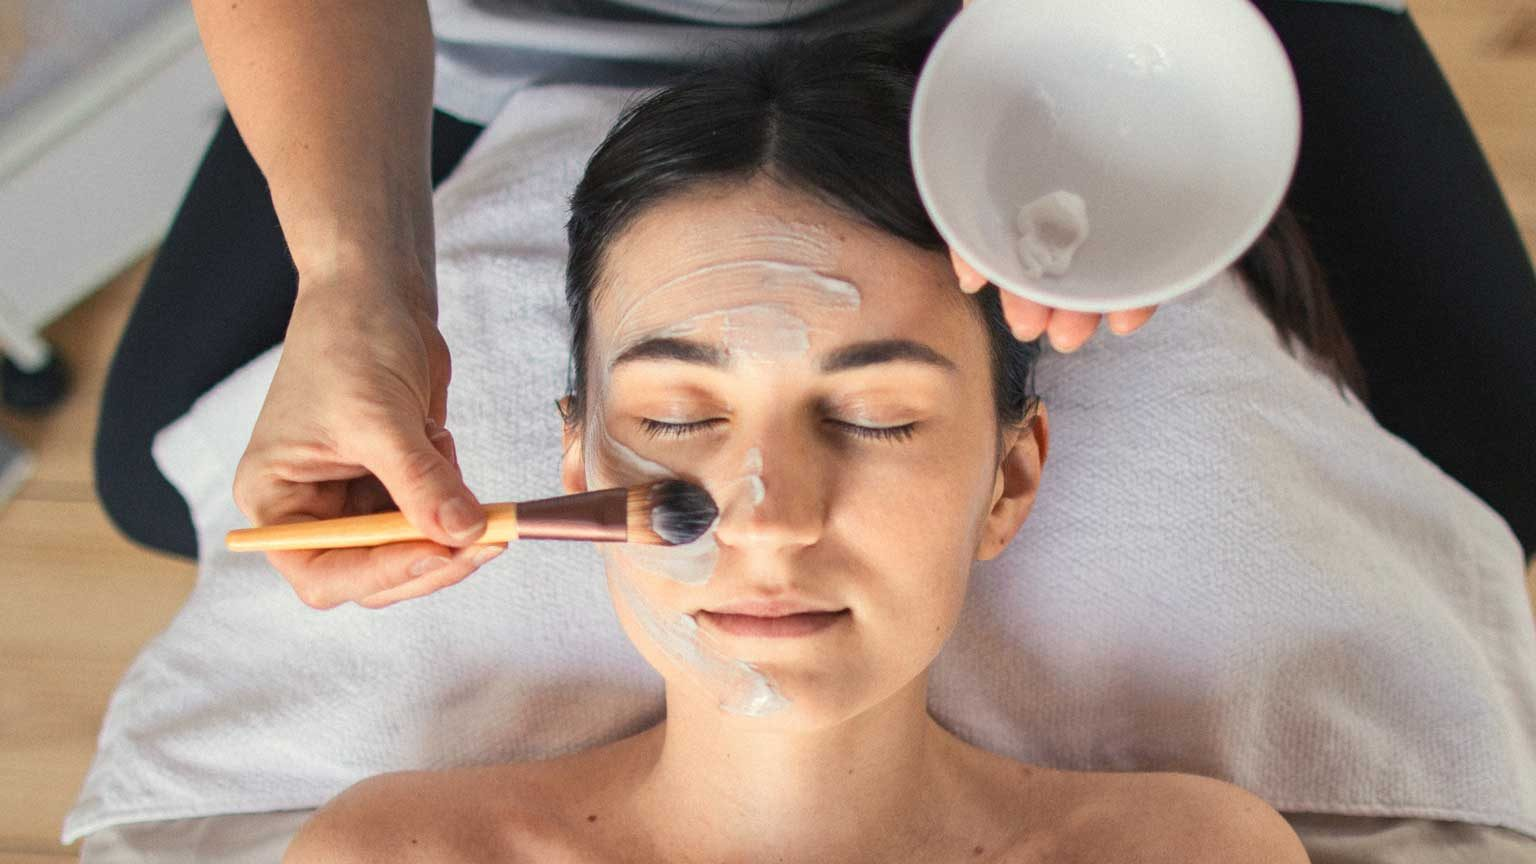 Applying Facial Mask To Woman In Spa